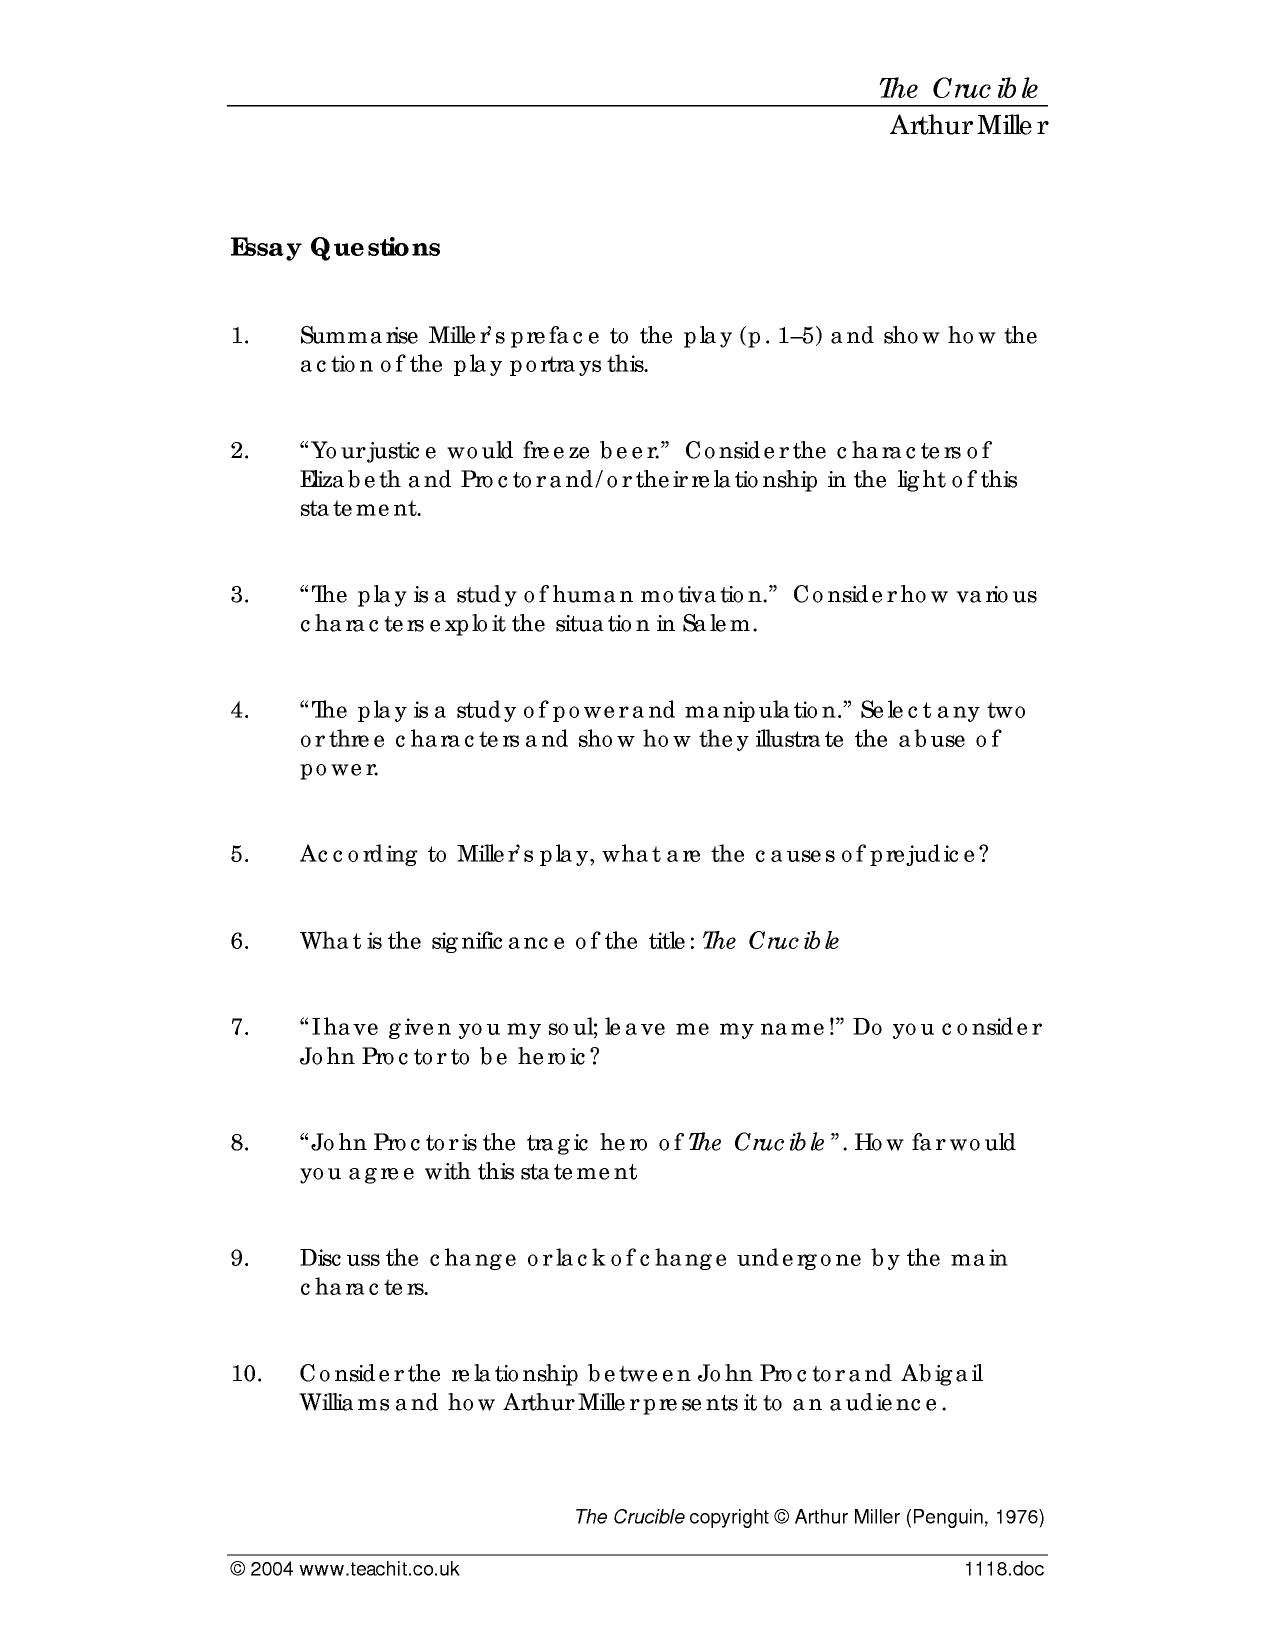 a selection of essay questions the crucible by arthur miller home home the crucible by arthur miller a selection of essay questions resource thumbnail